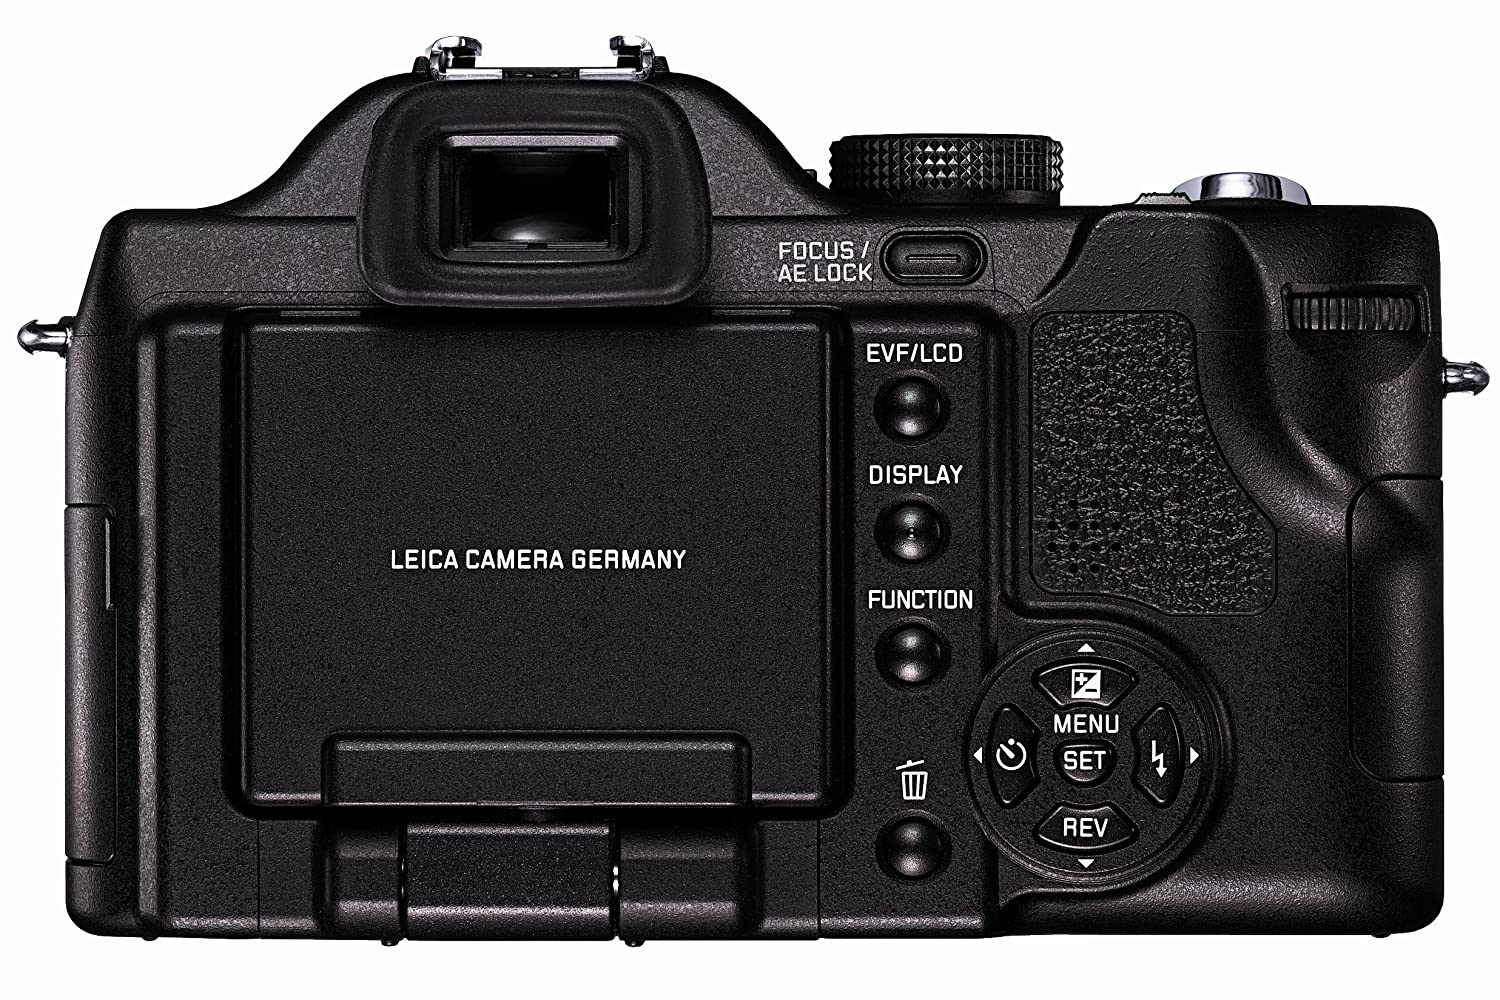 Amazon.com : Leica V-LUX 1 10.1MP Digital Camera with 12x Optical Image  Stabilized Zoom : Point And Shoot Digital Cameras : Camera & Photo